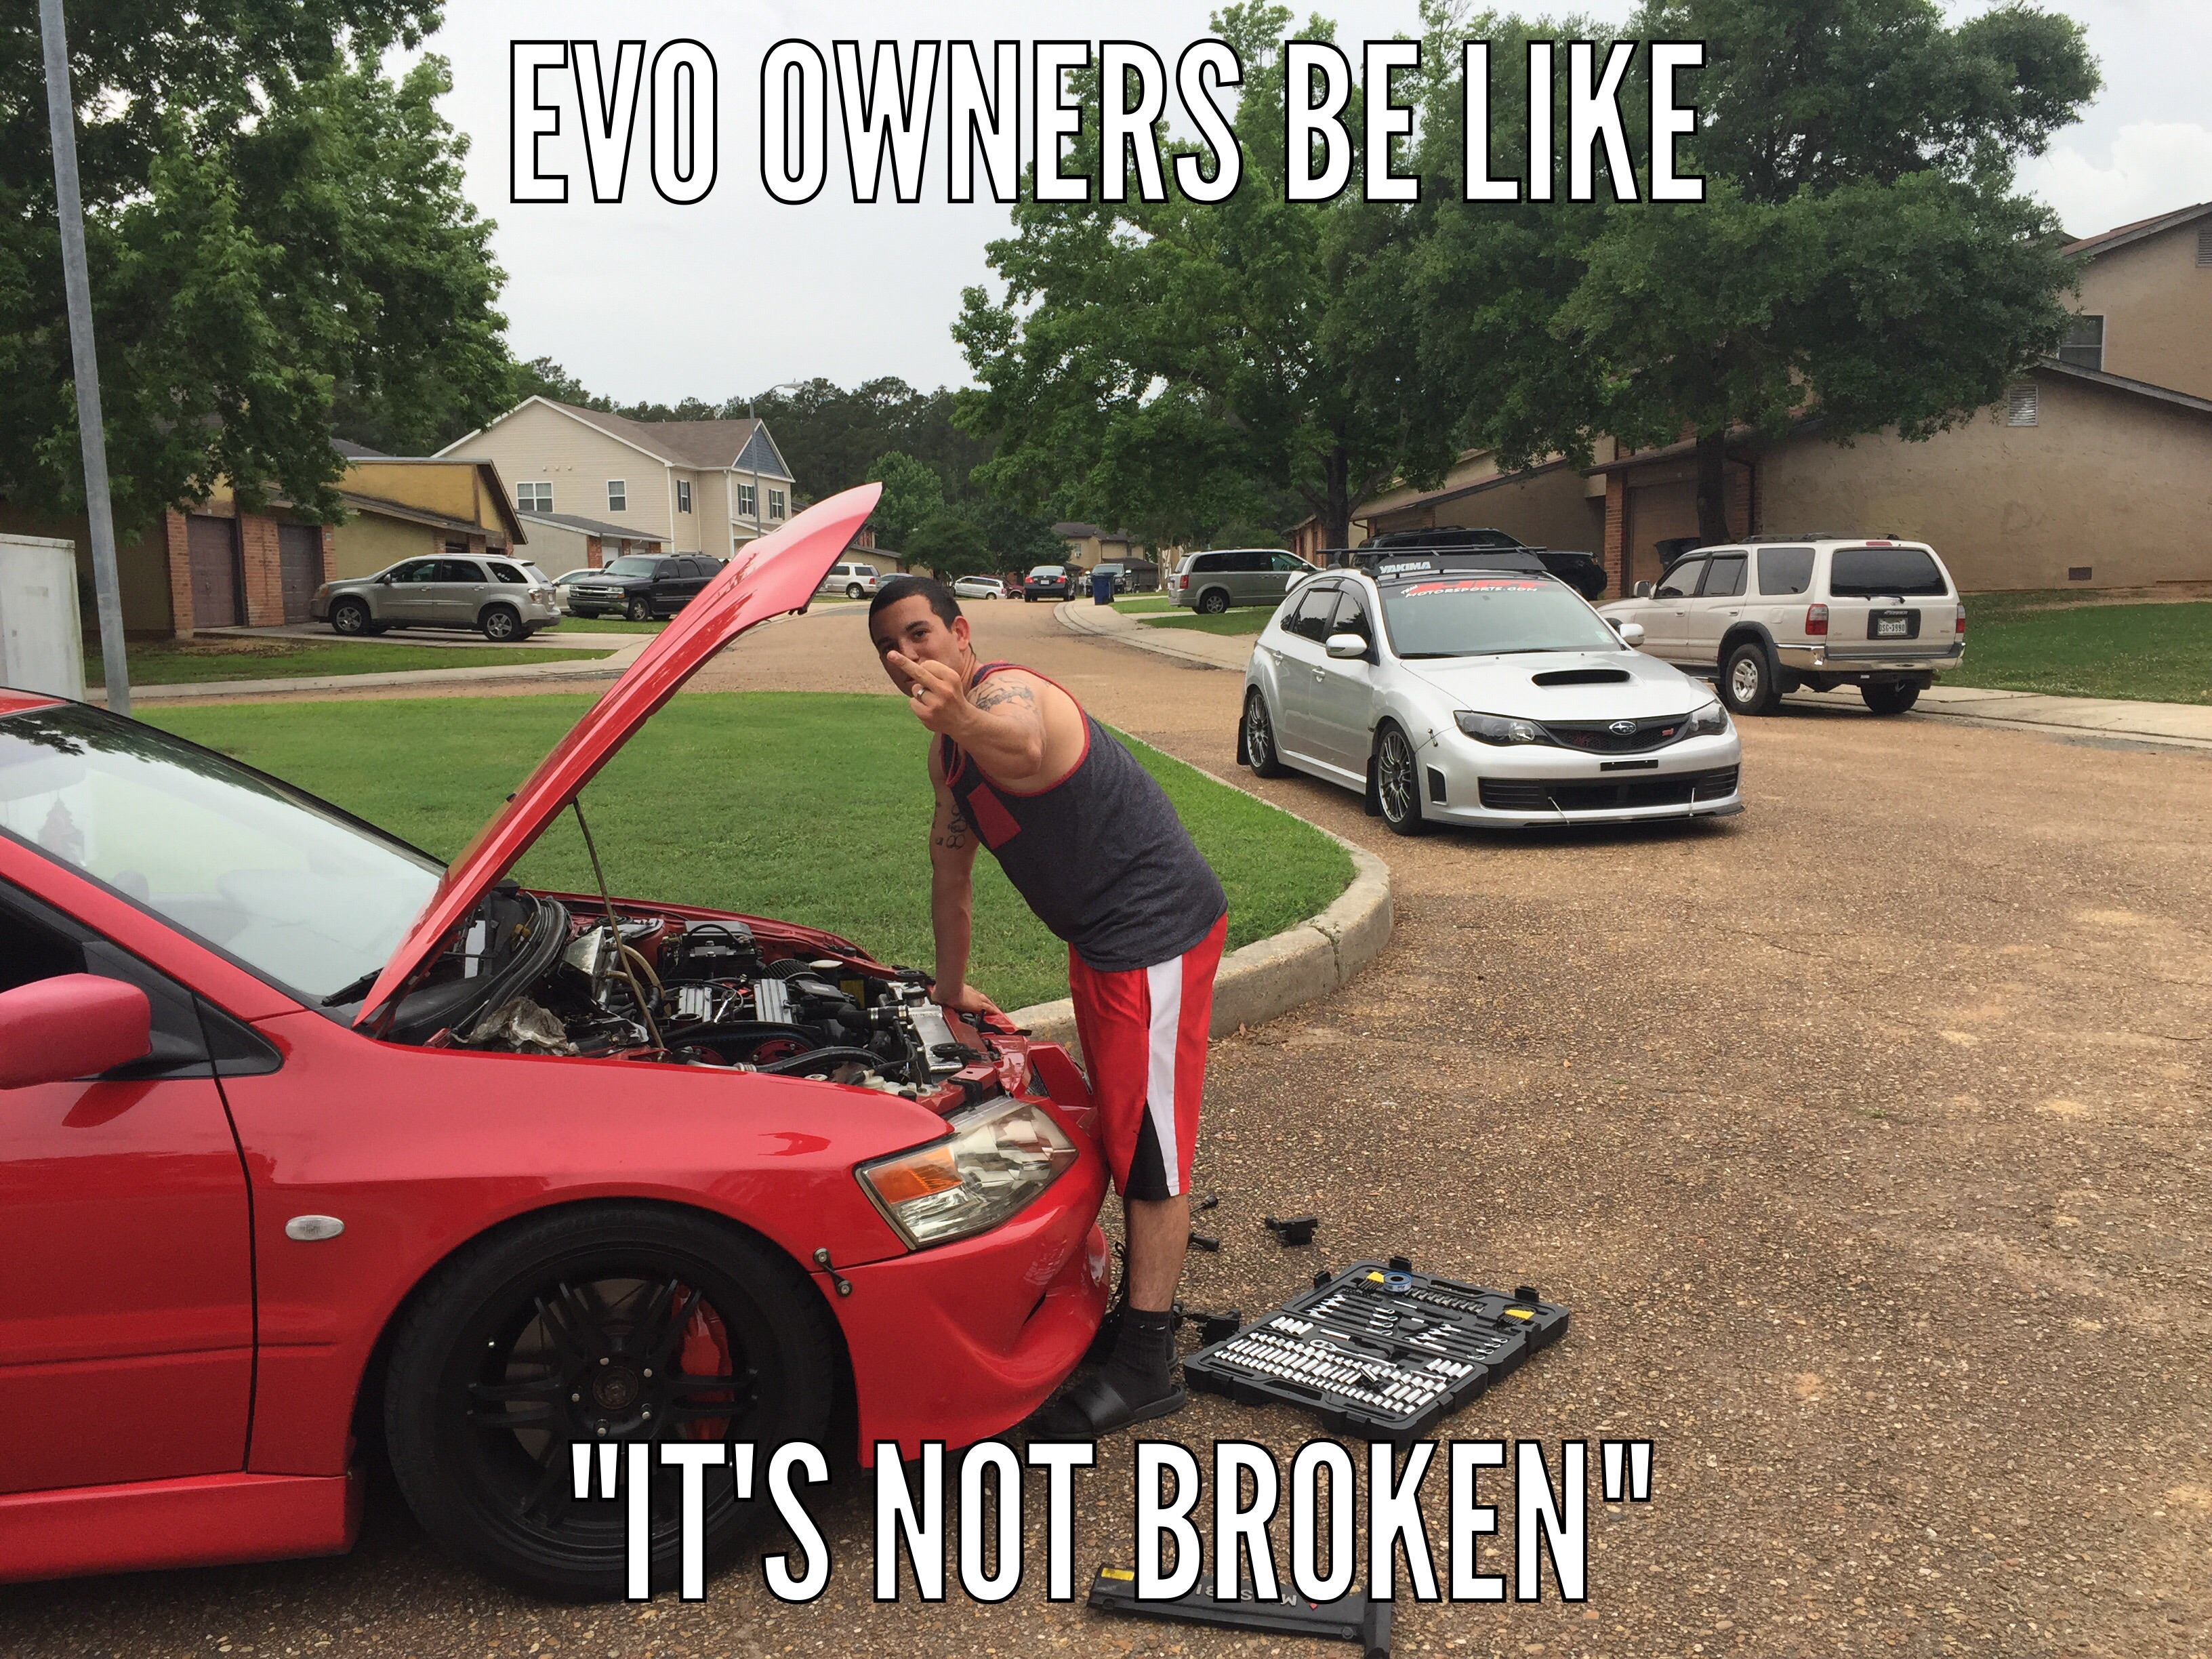 The On Going Relationship Of Sti And Evo Friends